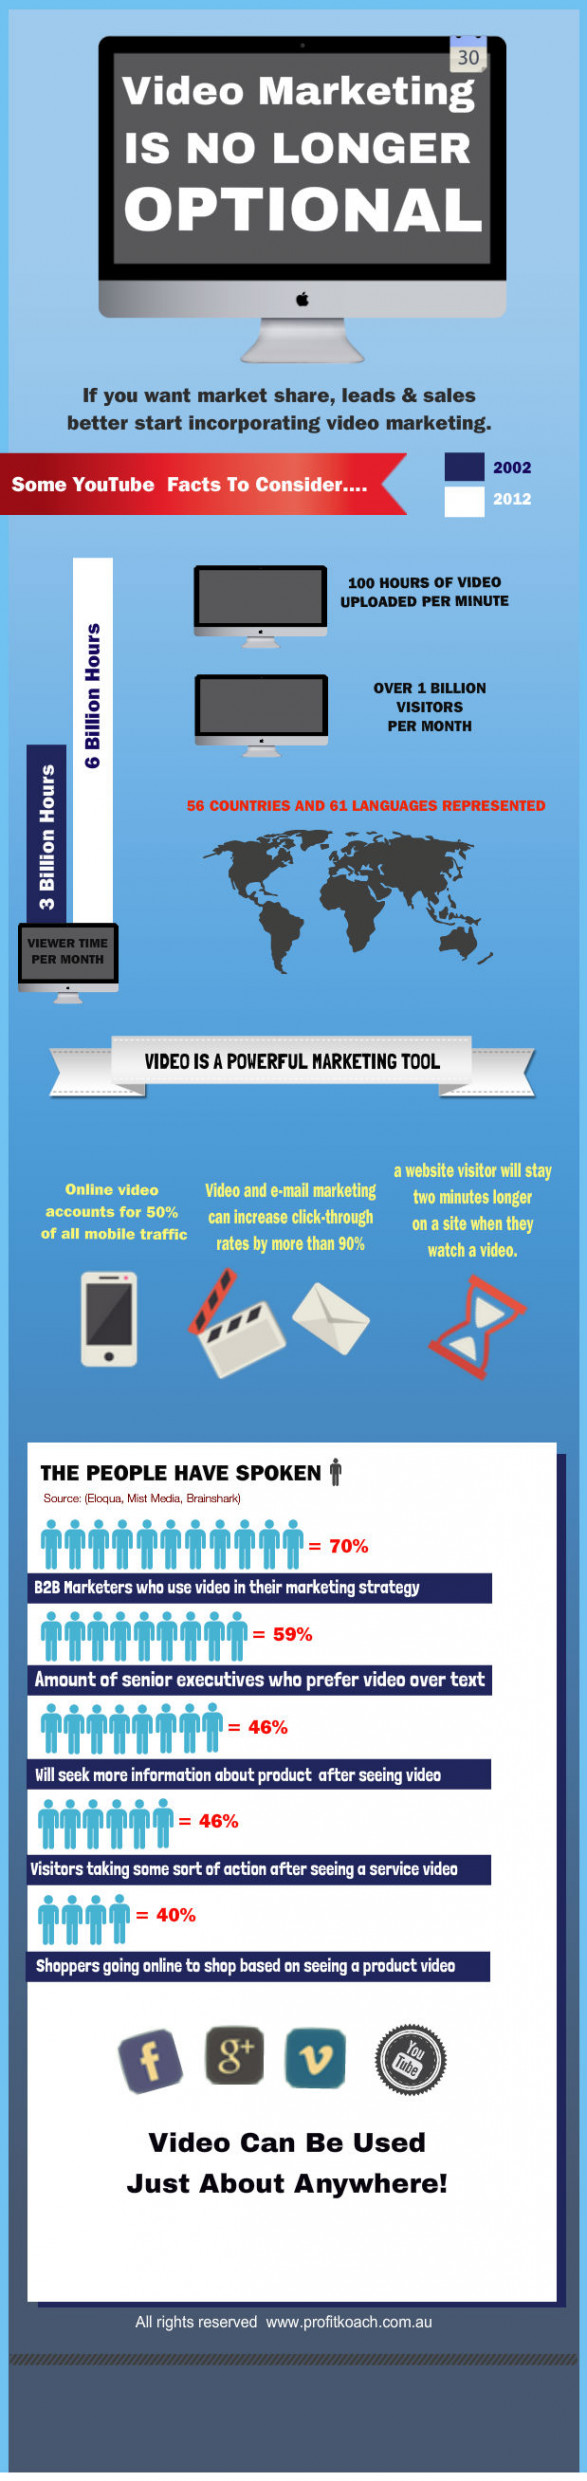 Video marketing is no longer optional